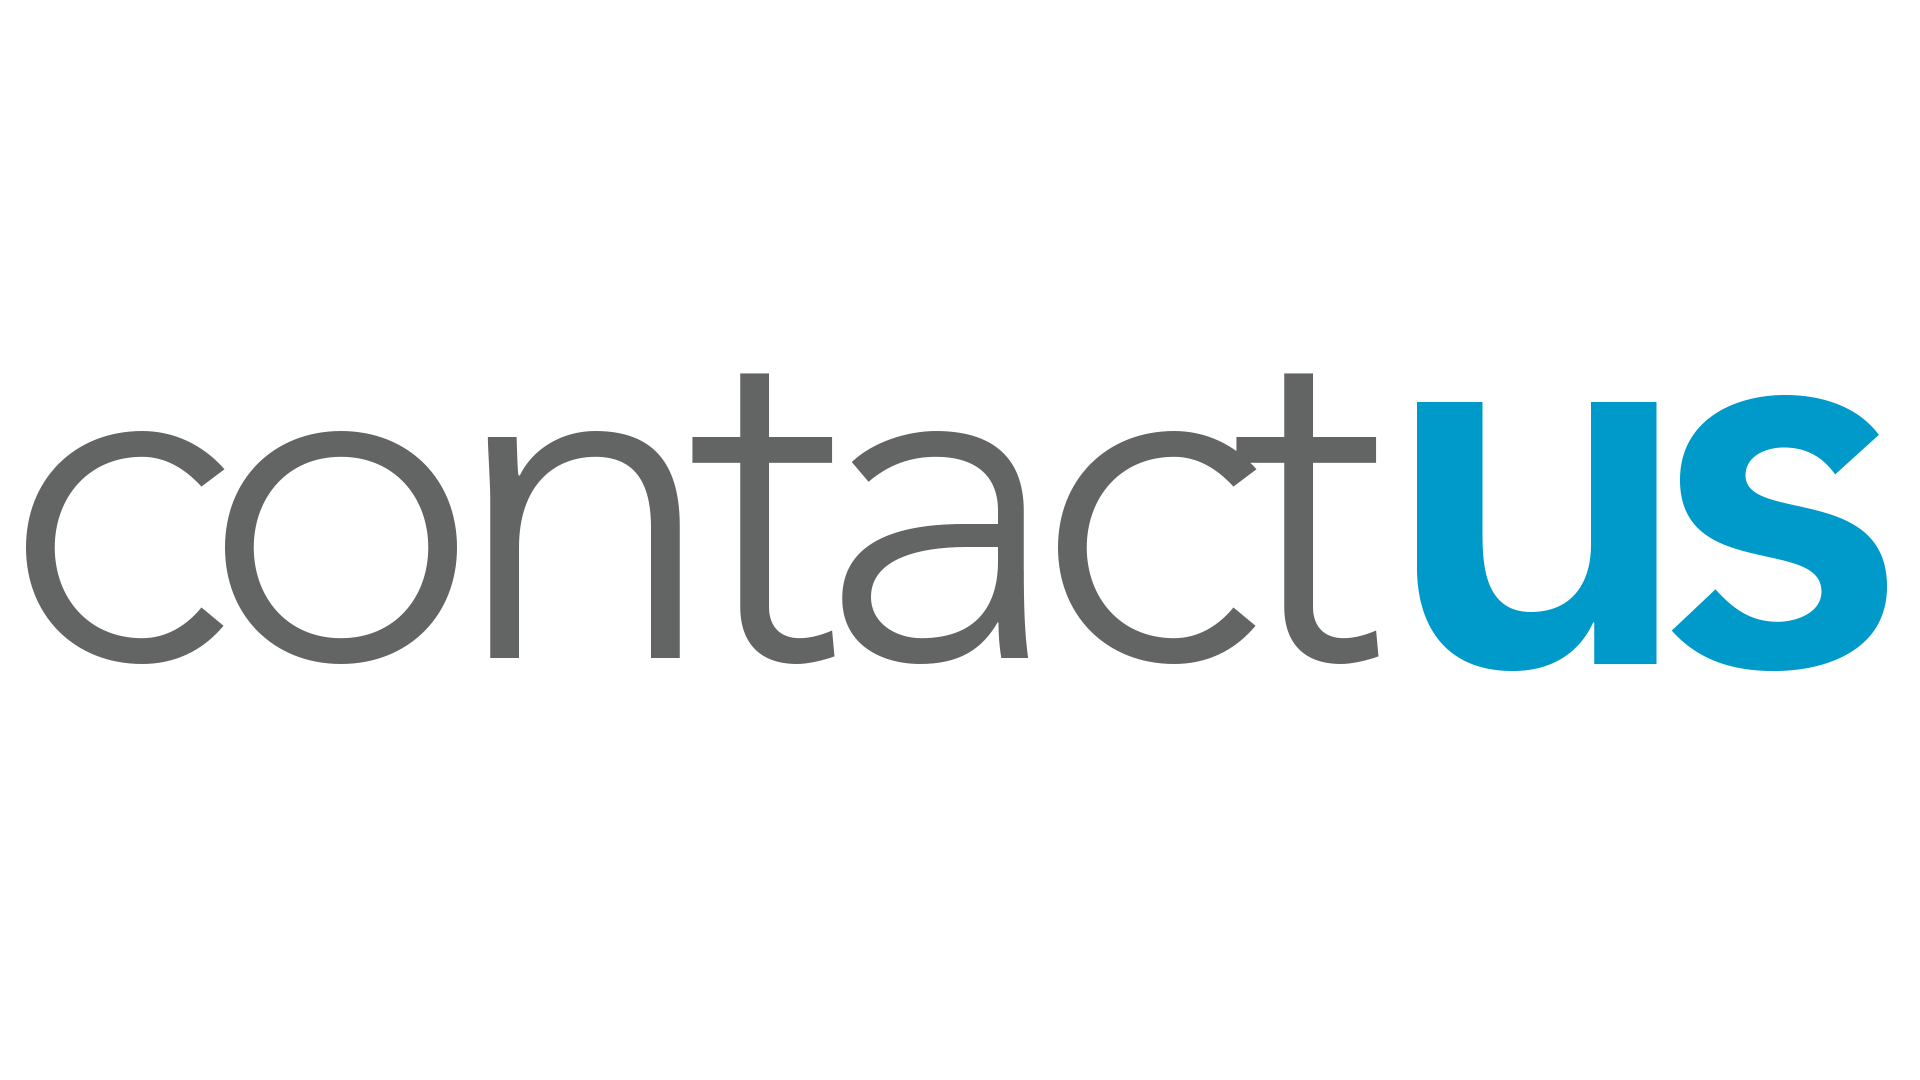 Contact Us Logo Hd